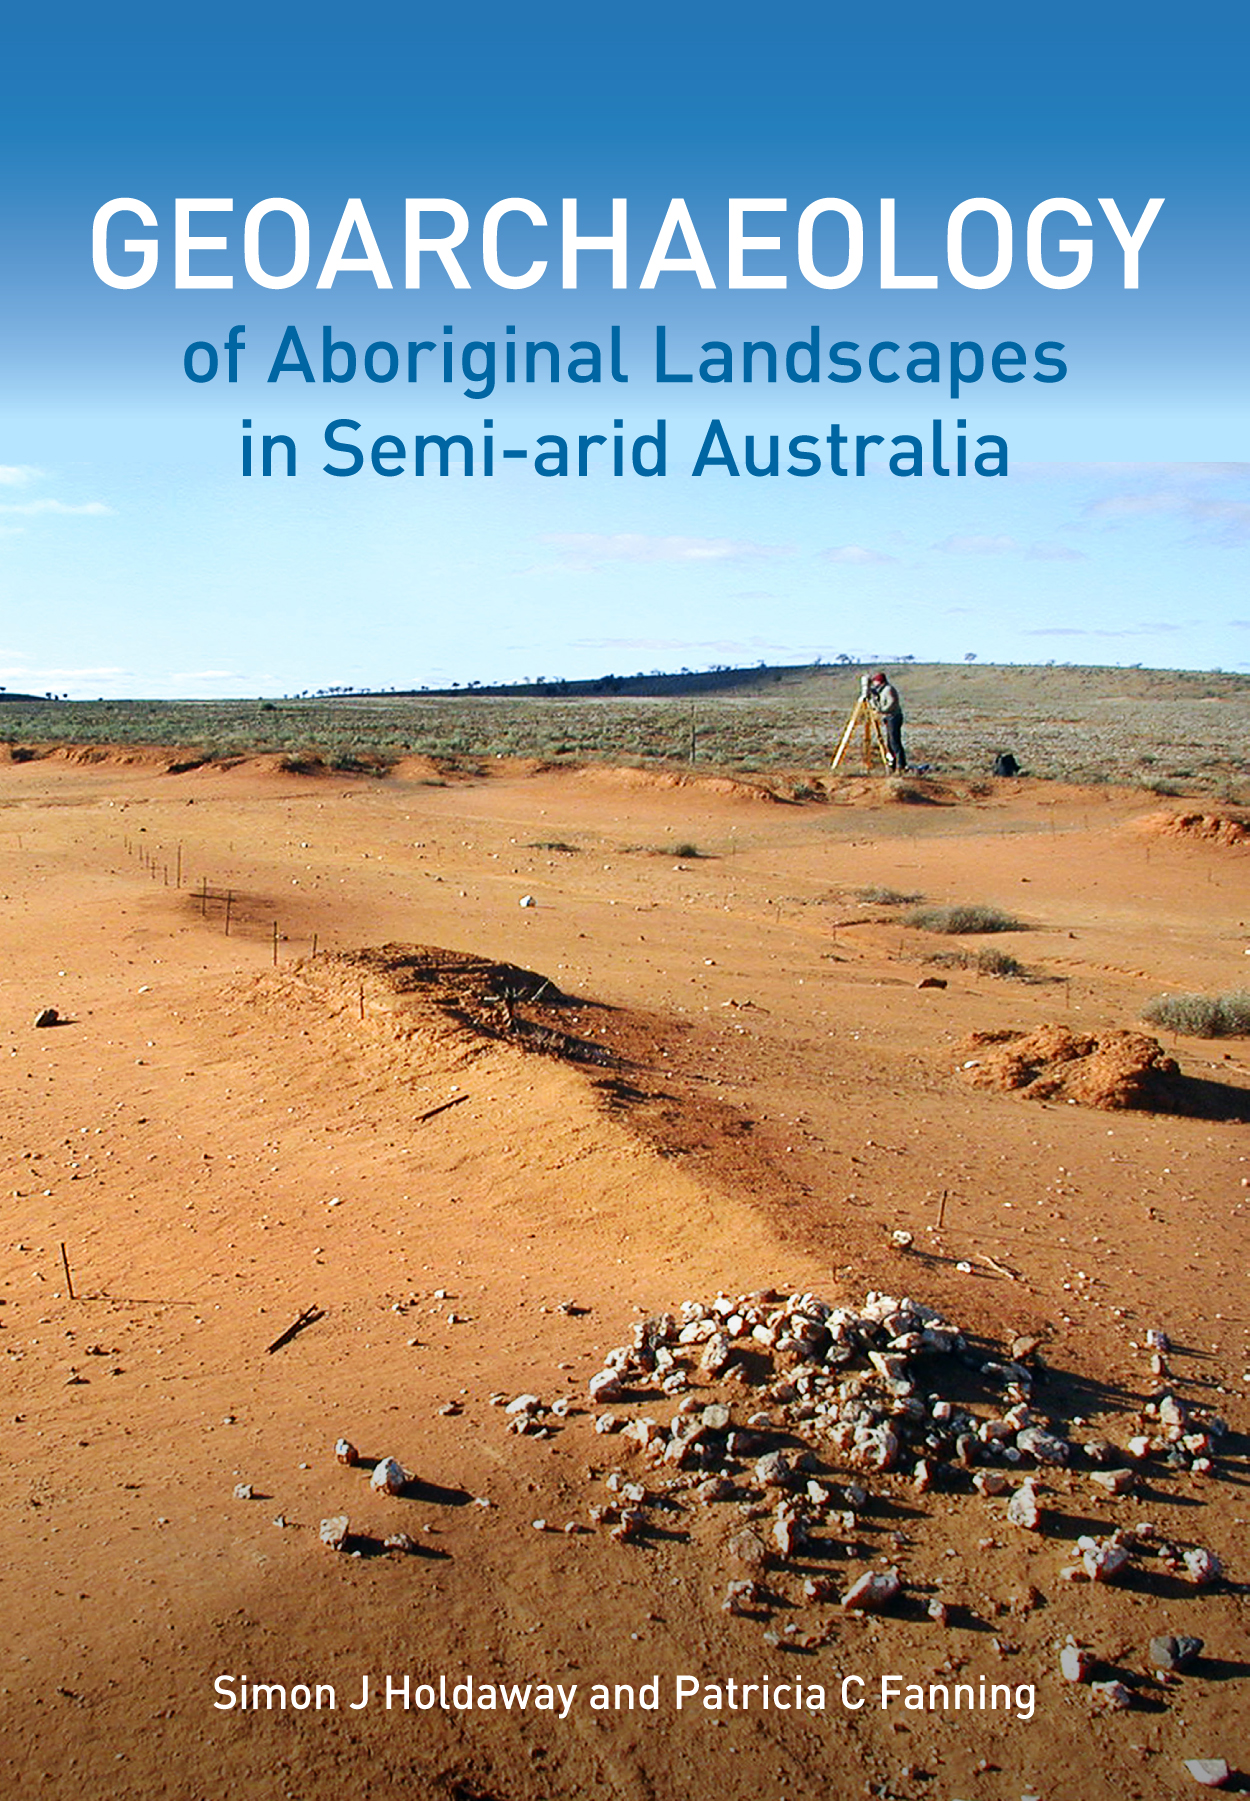 The cover image of Geoarchaeology of Aboriginal Landscapes in Semi-arid Au